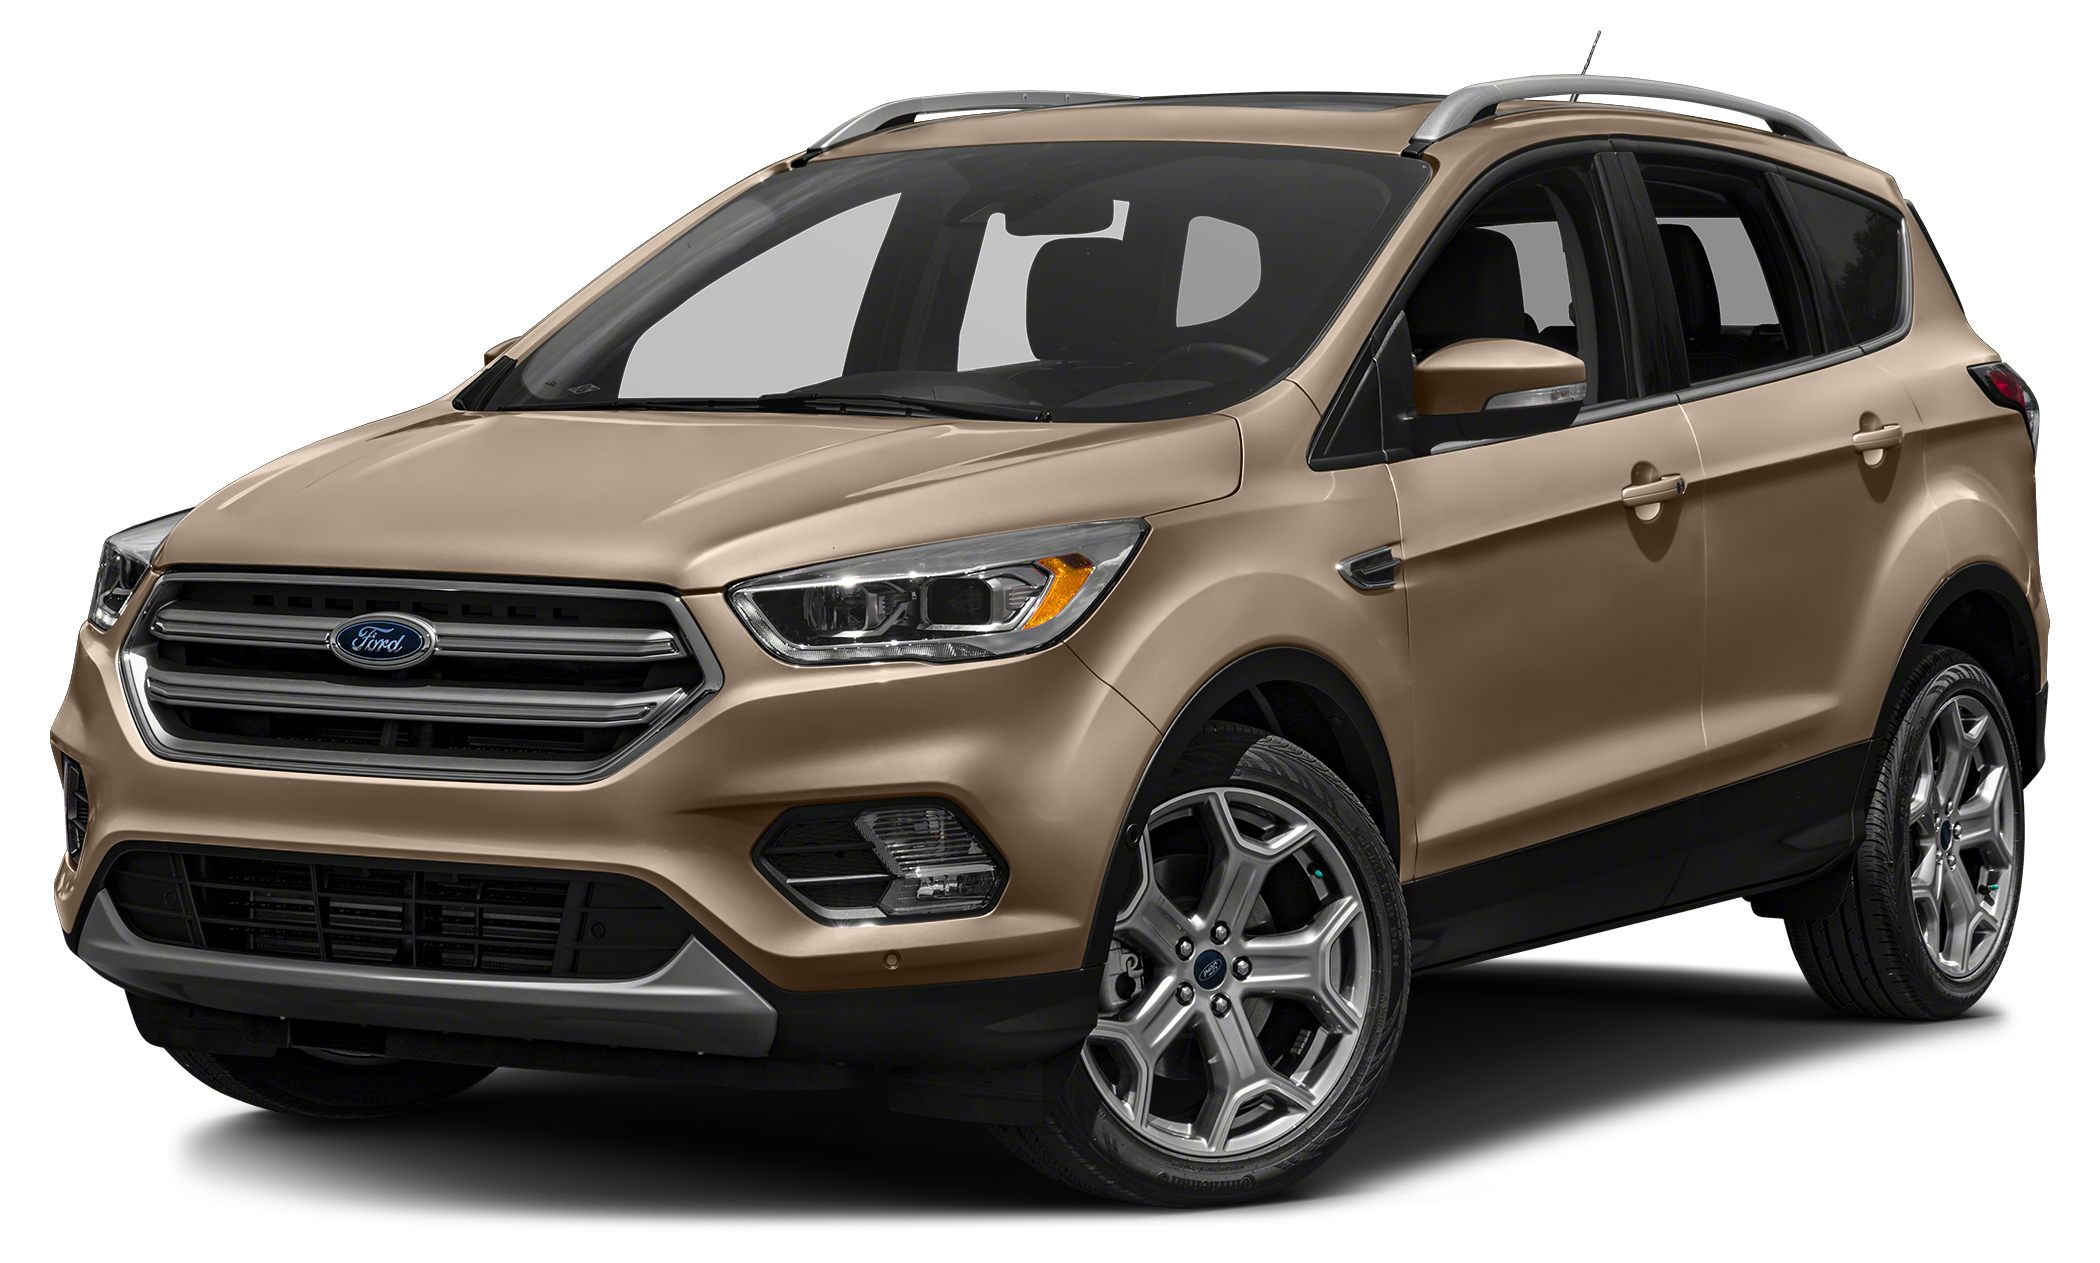 2018 Ford Escape Titanium 2018 Ford Escape Titanium 2922 HighwayCity MPG Price includes 2000